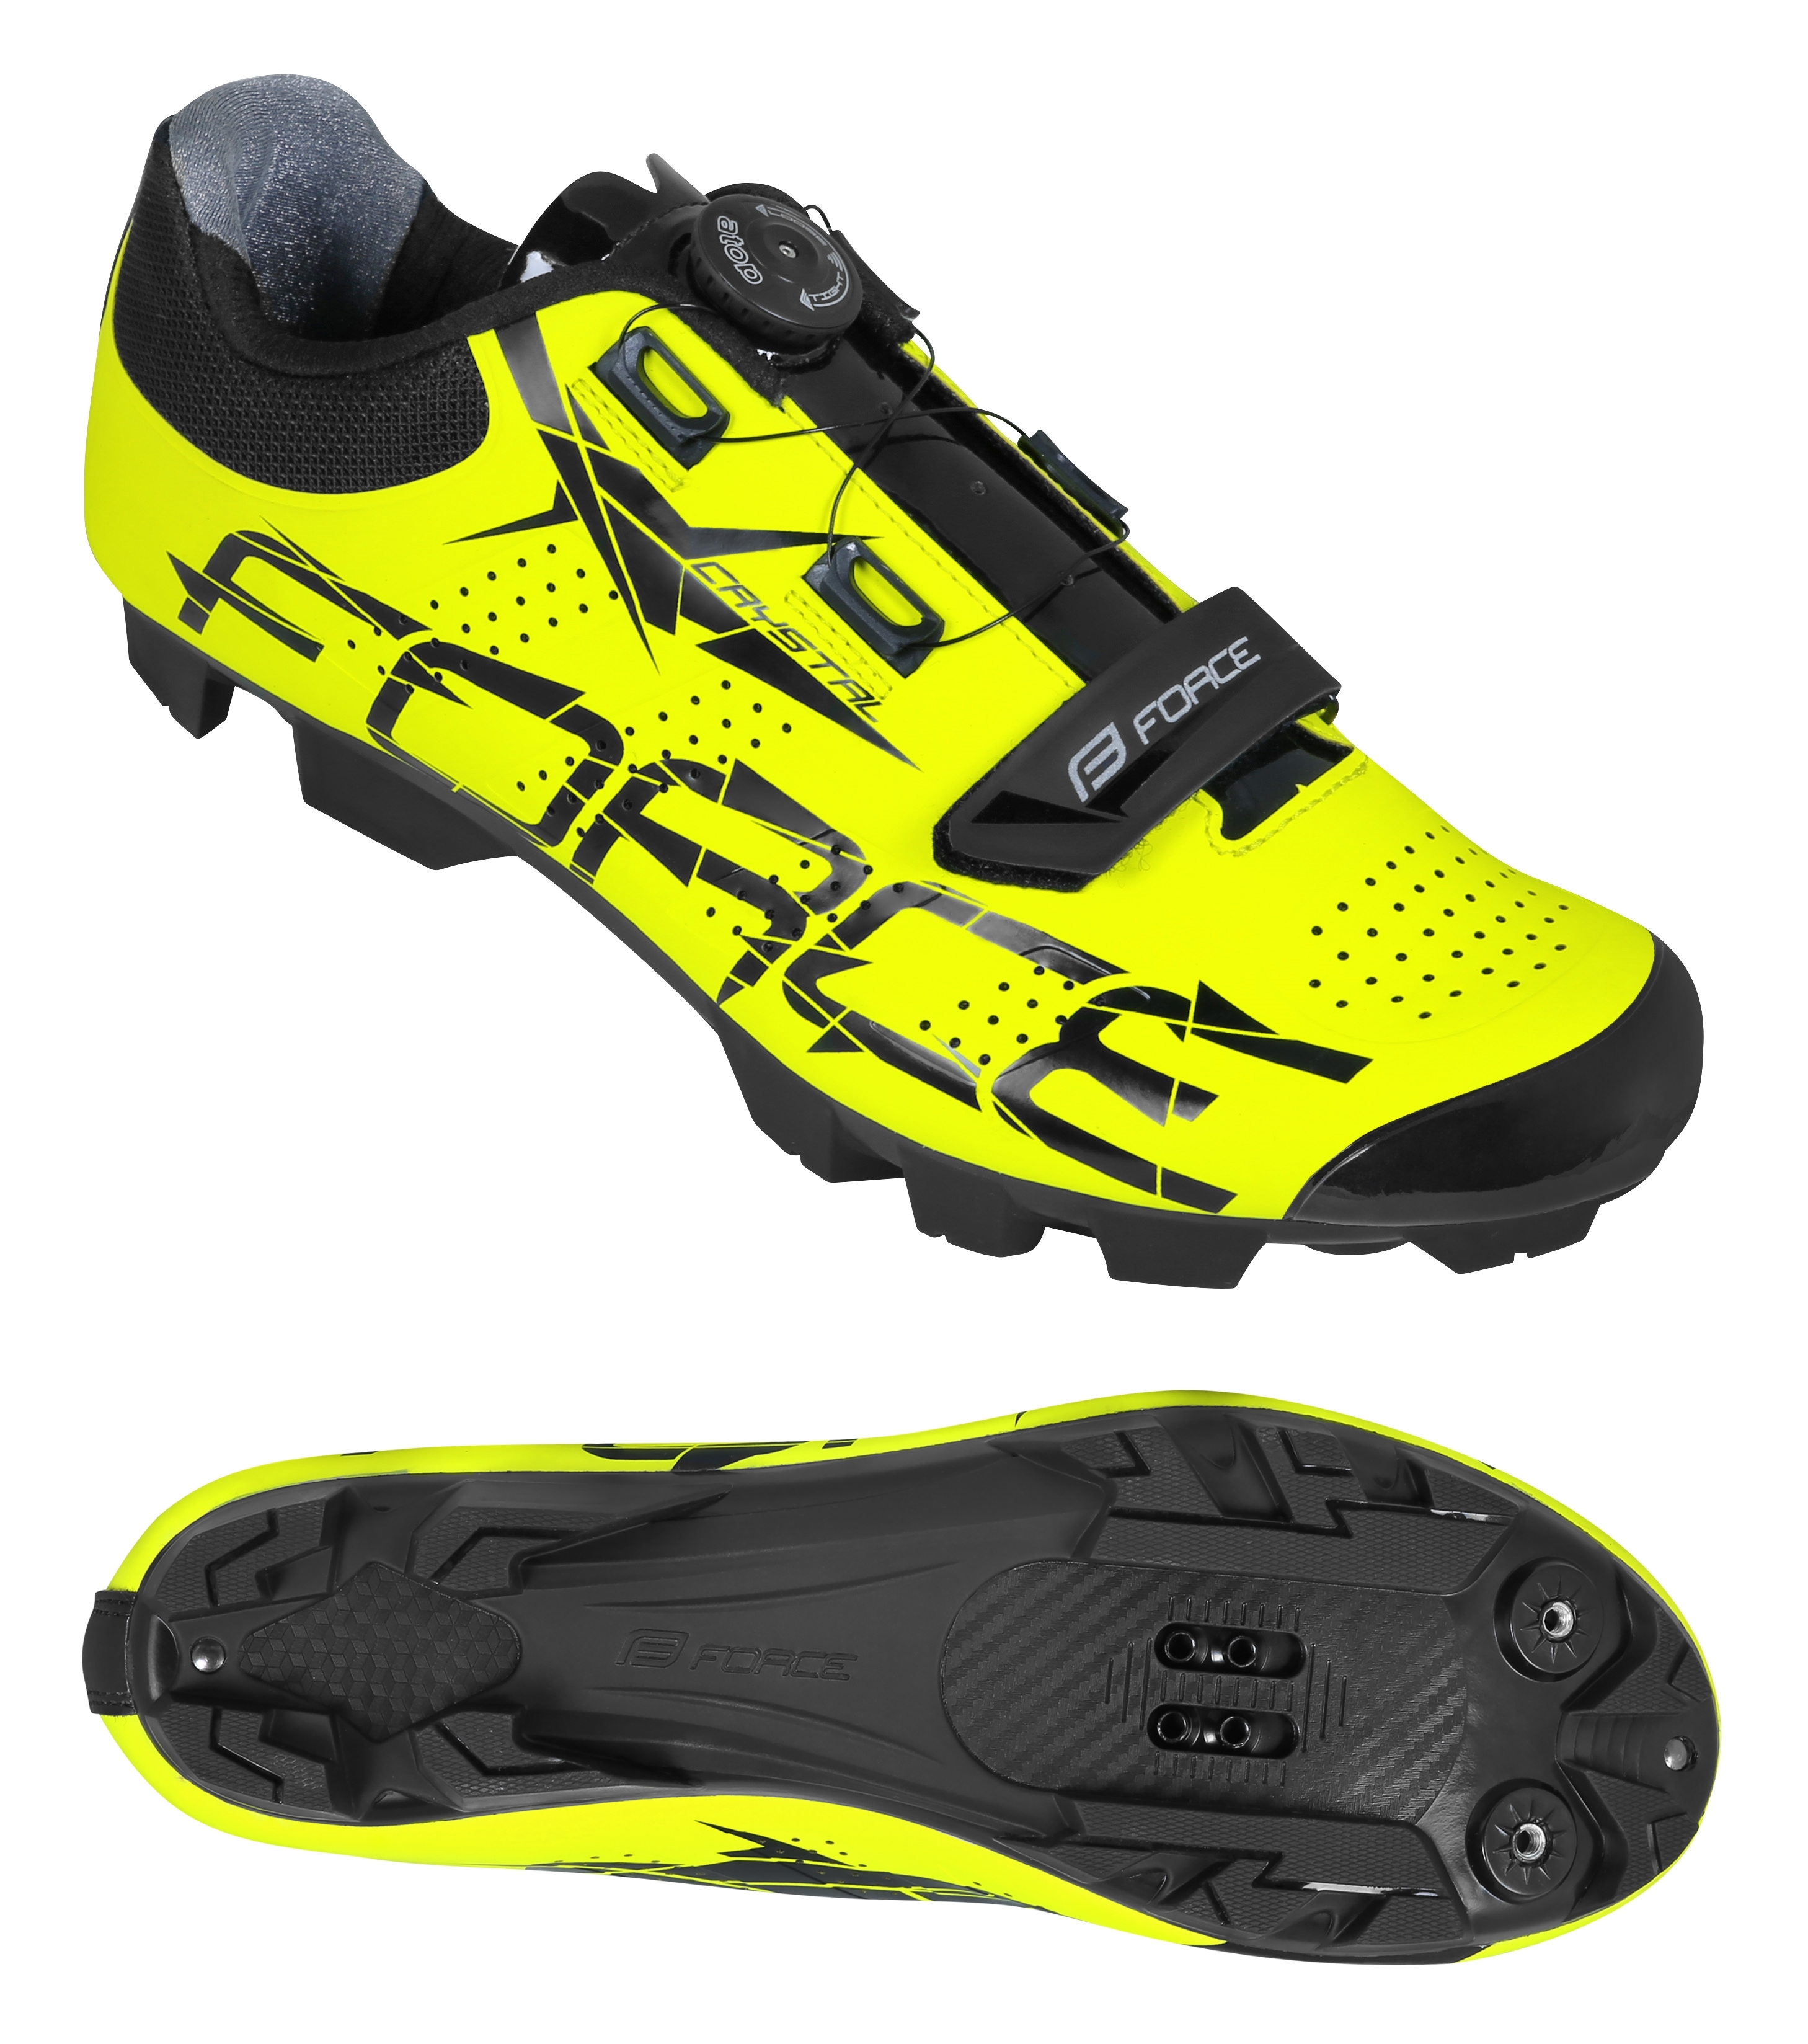 Tretry FORCE MTB CRYSTAL vel. 40, fluo